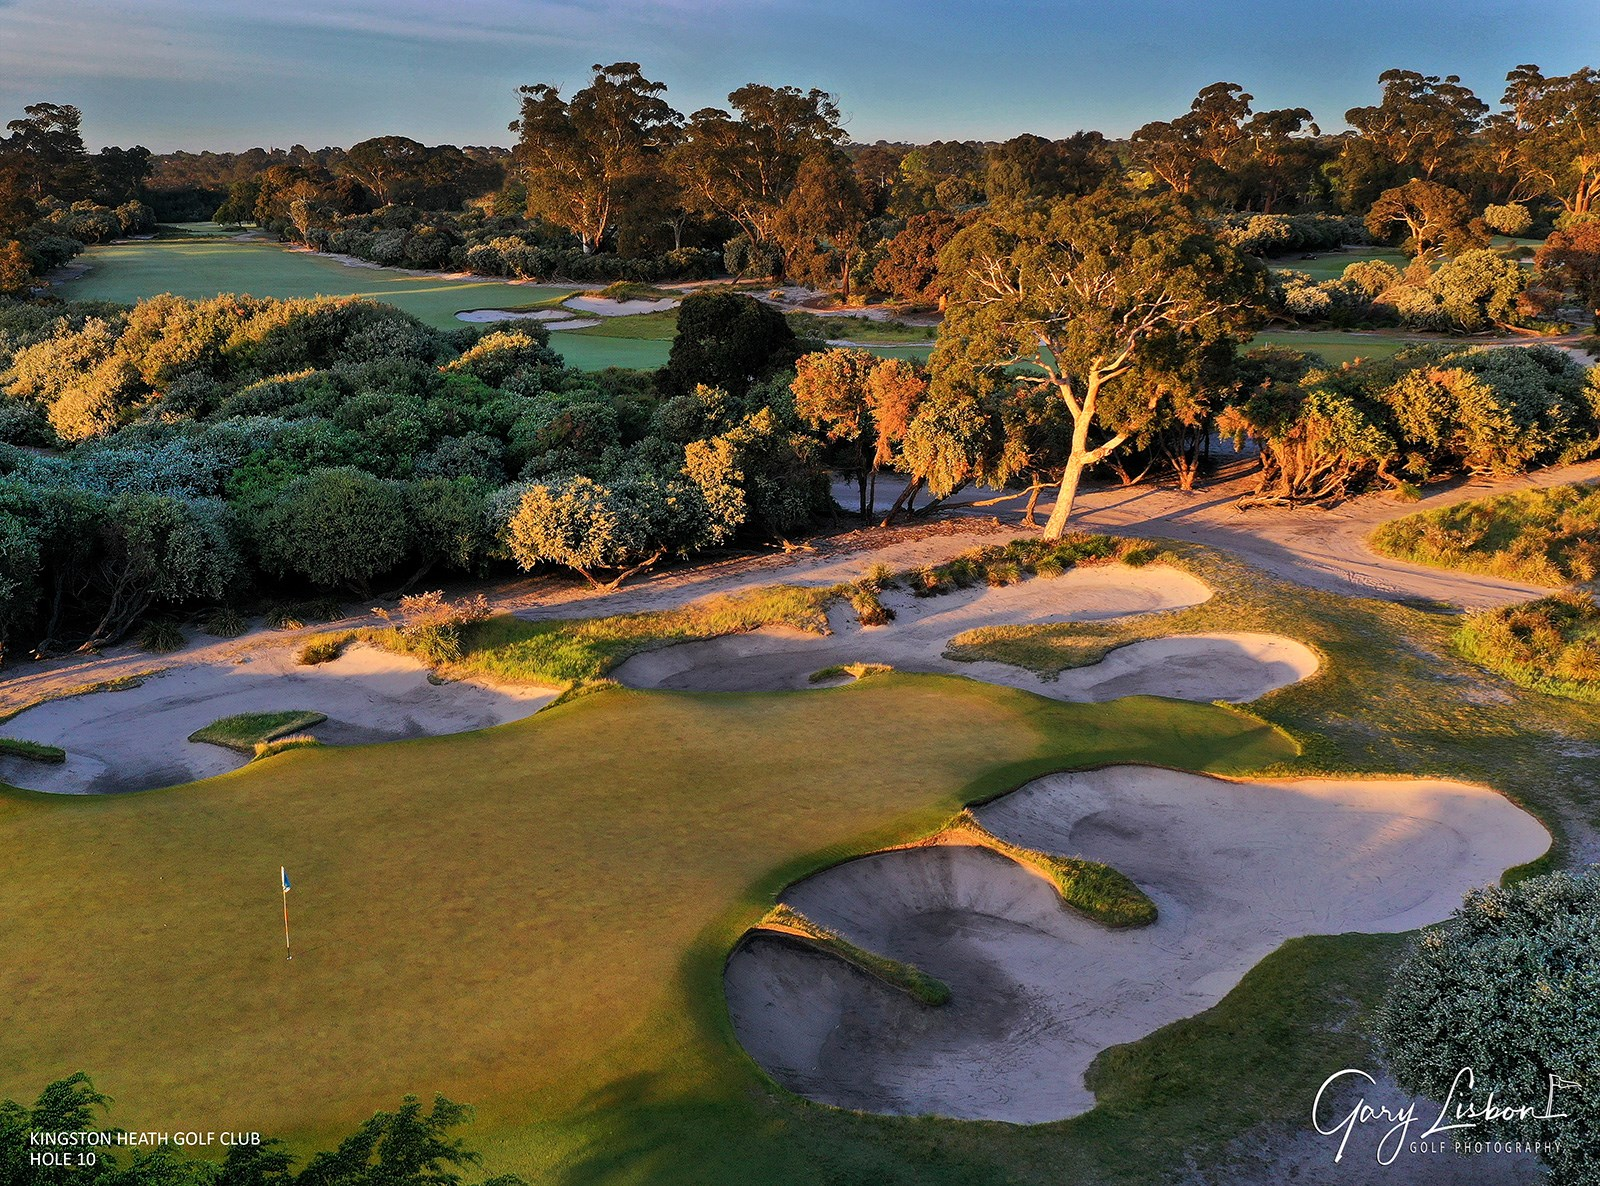 Kingston Heath Golf Club Hole 10